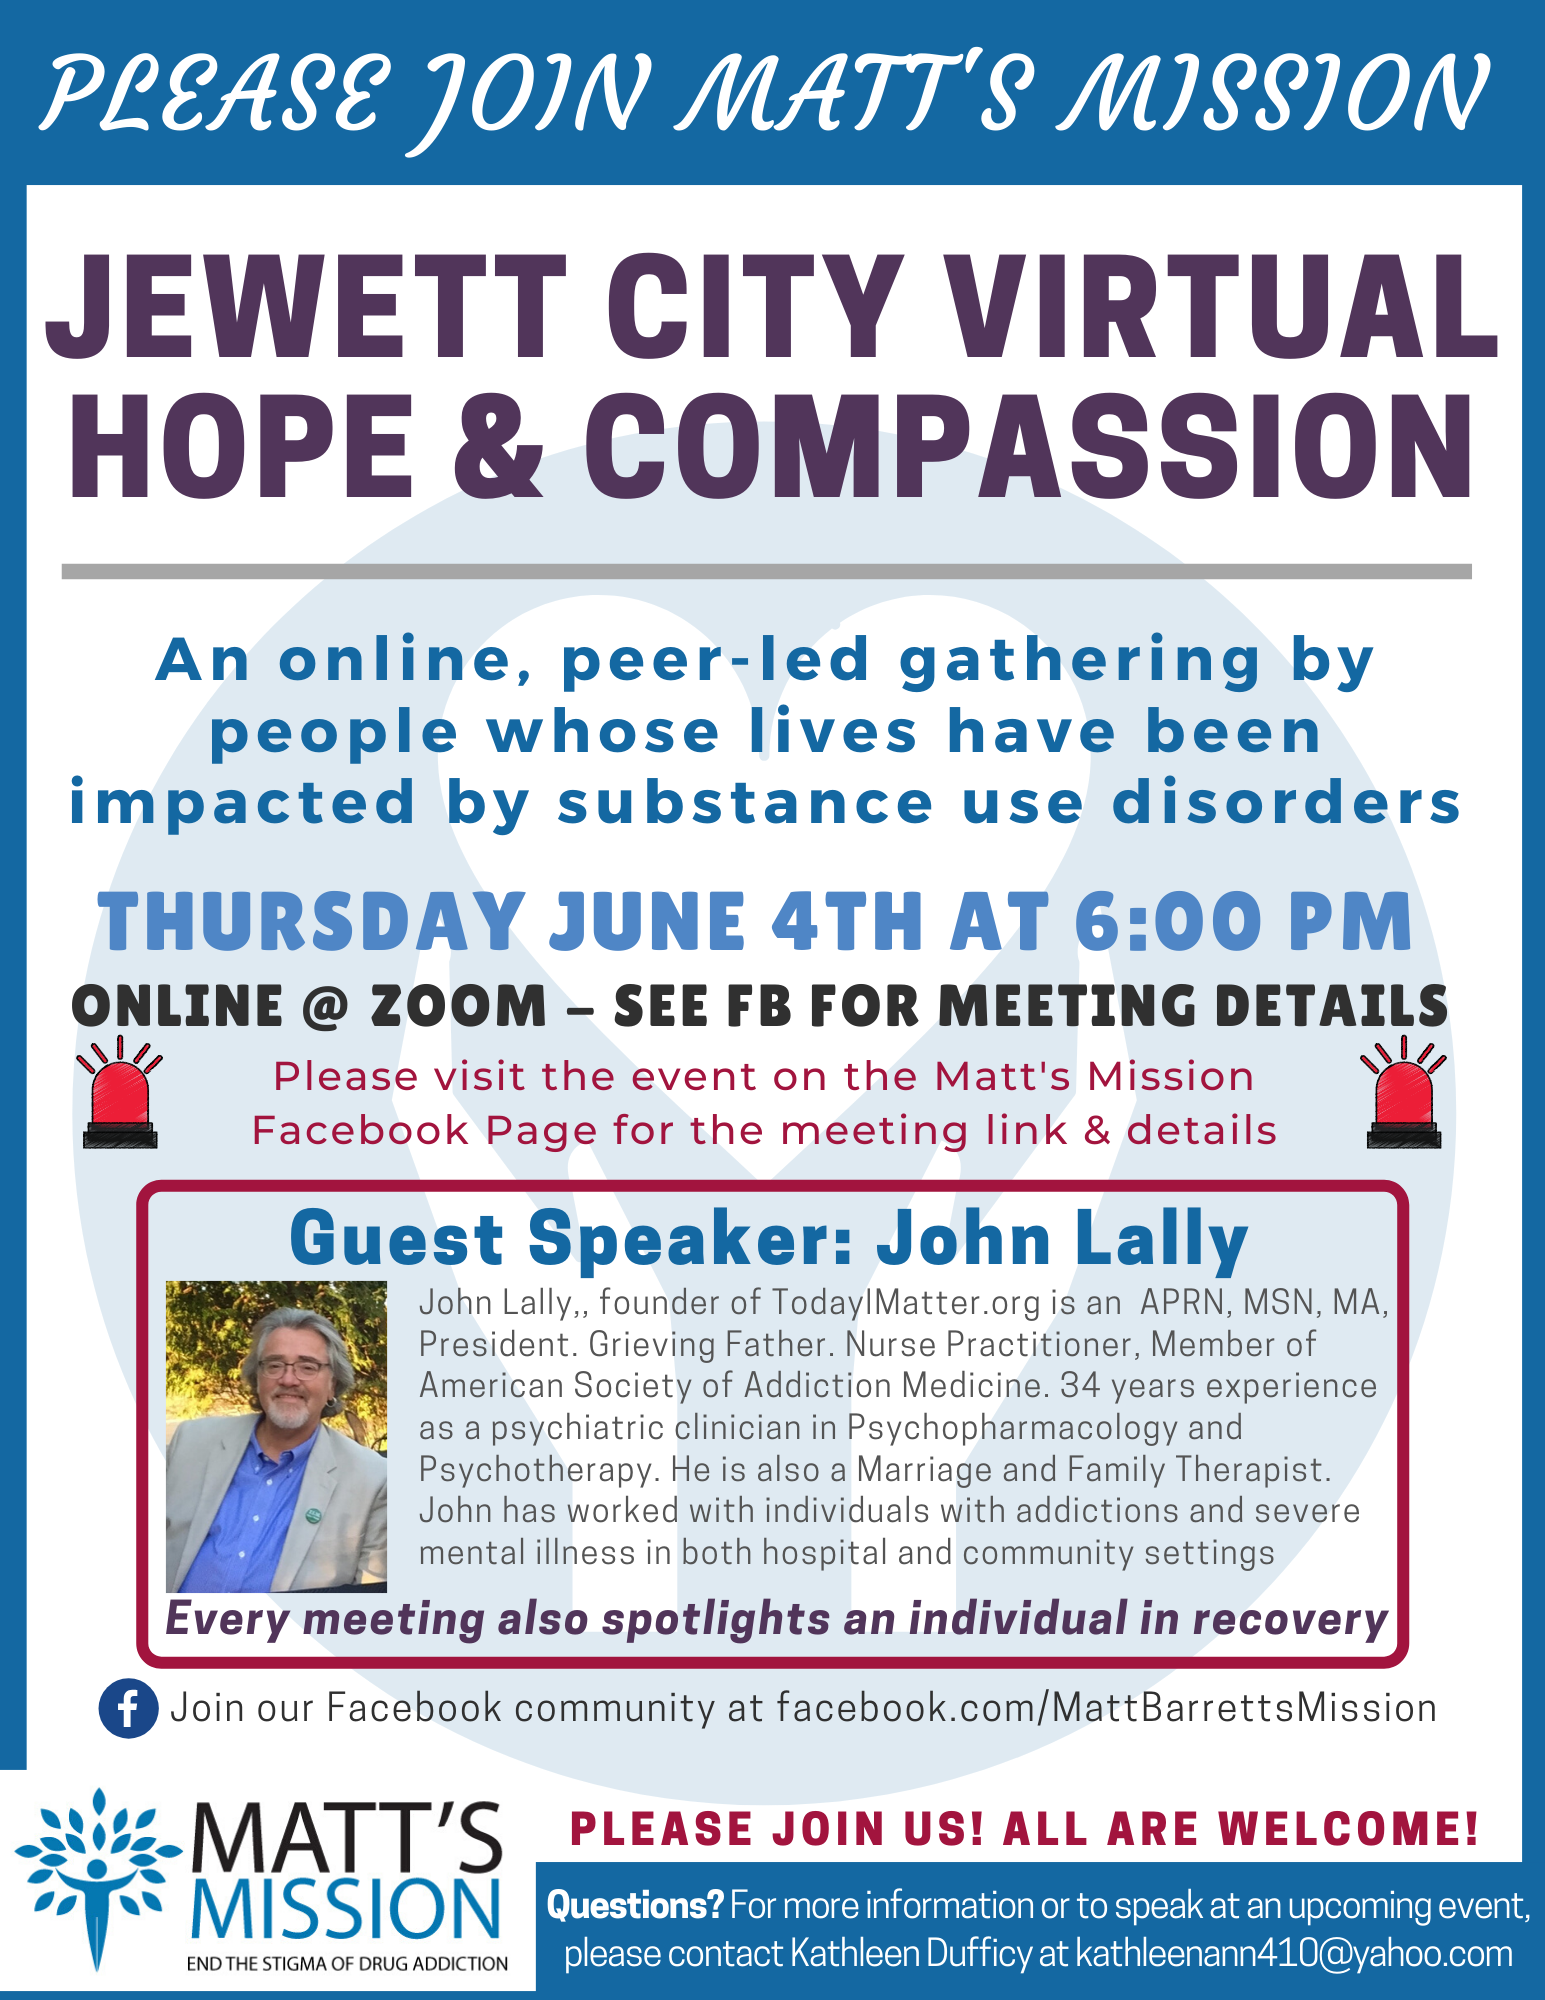 Join us for Jewett City Hope and Compassion on June 4th, 2020.